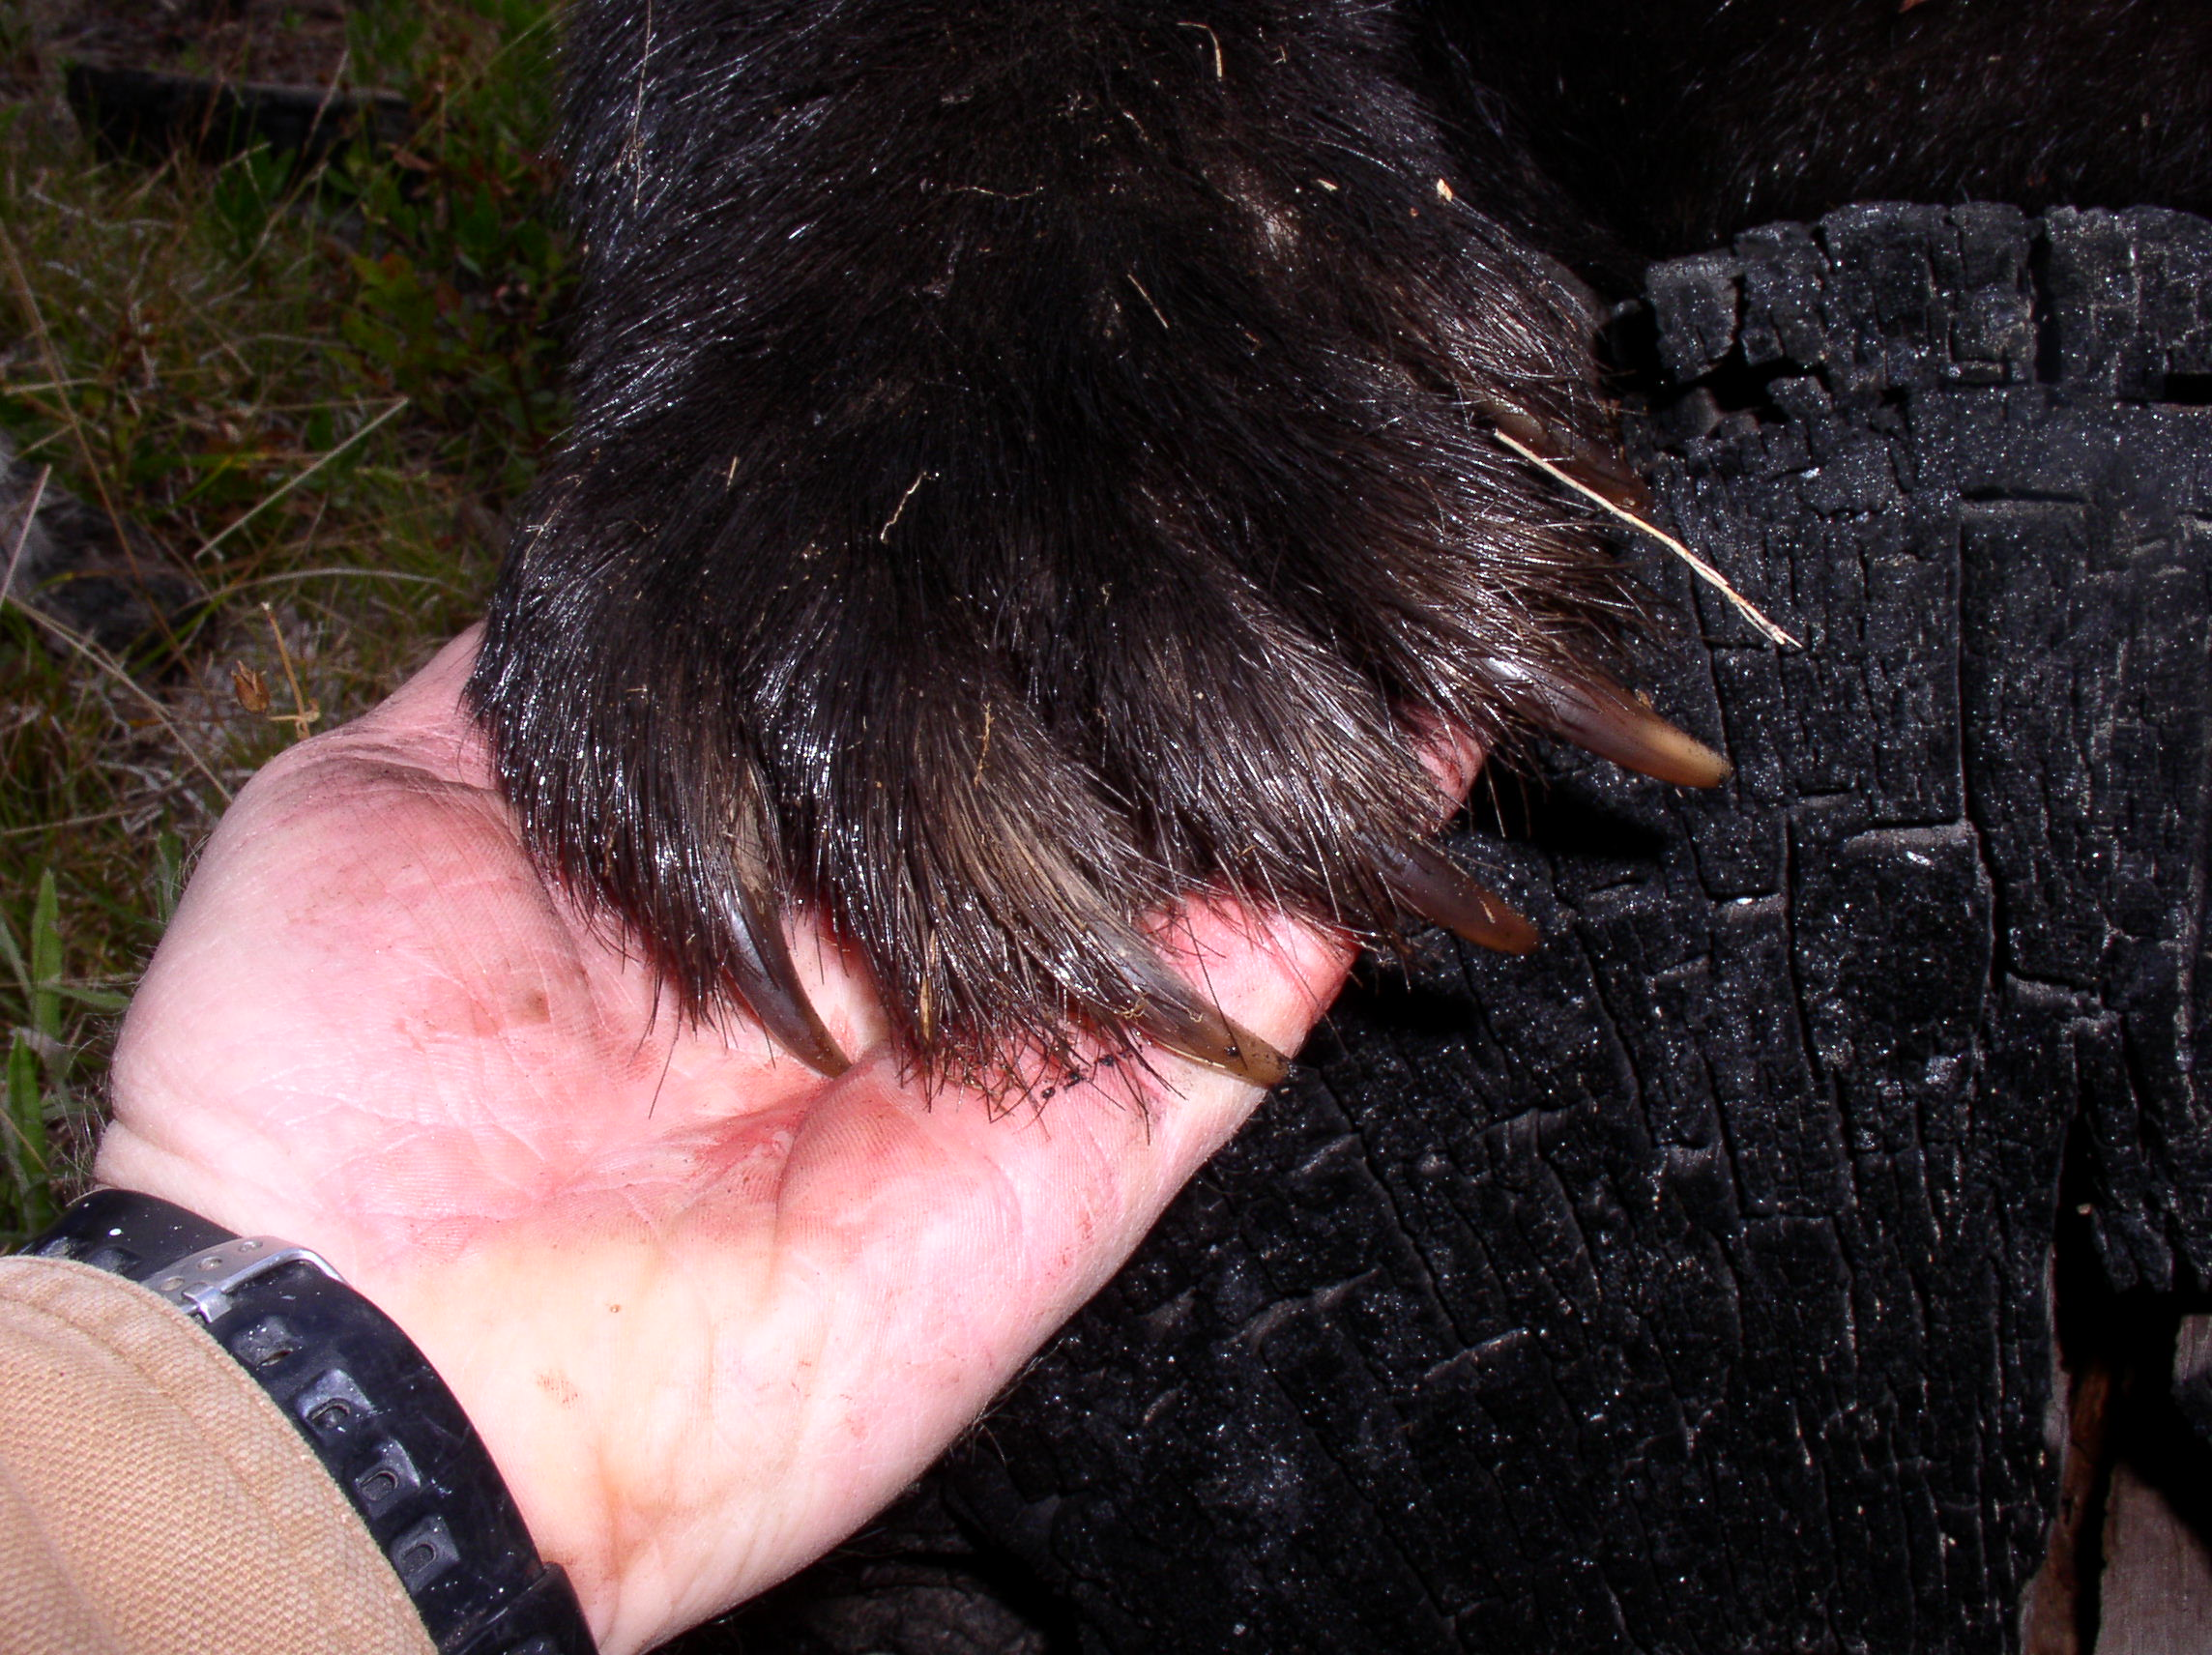 Bear paws and claws